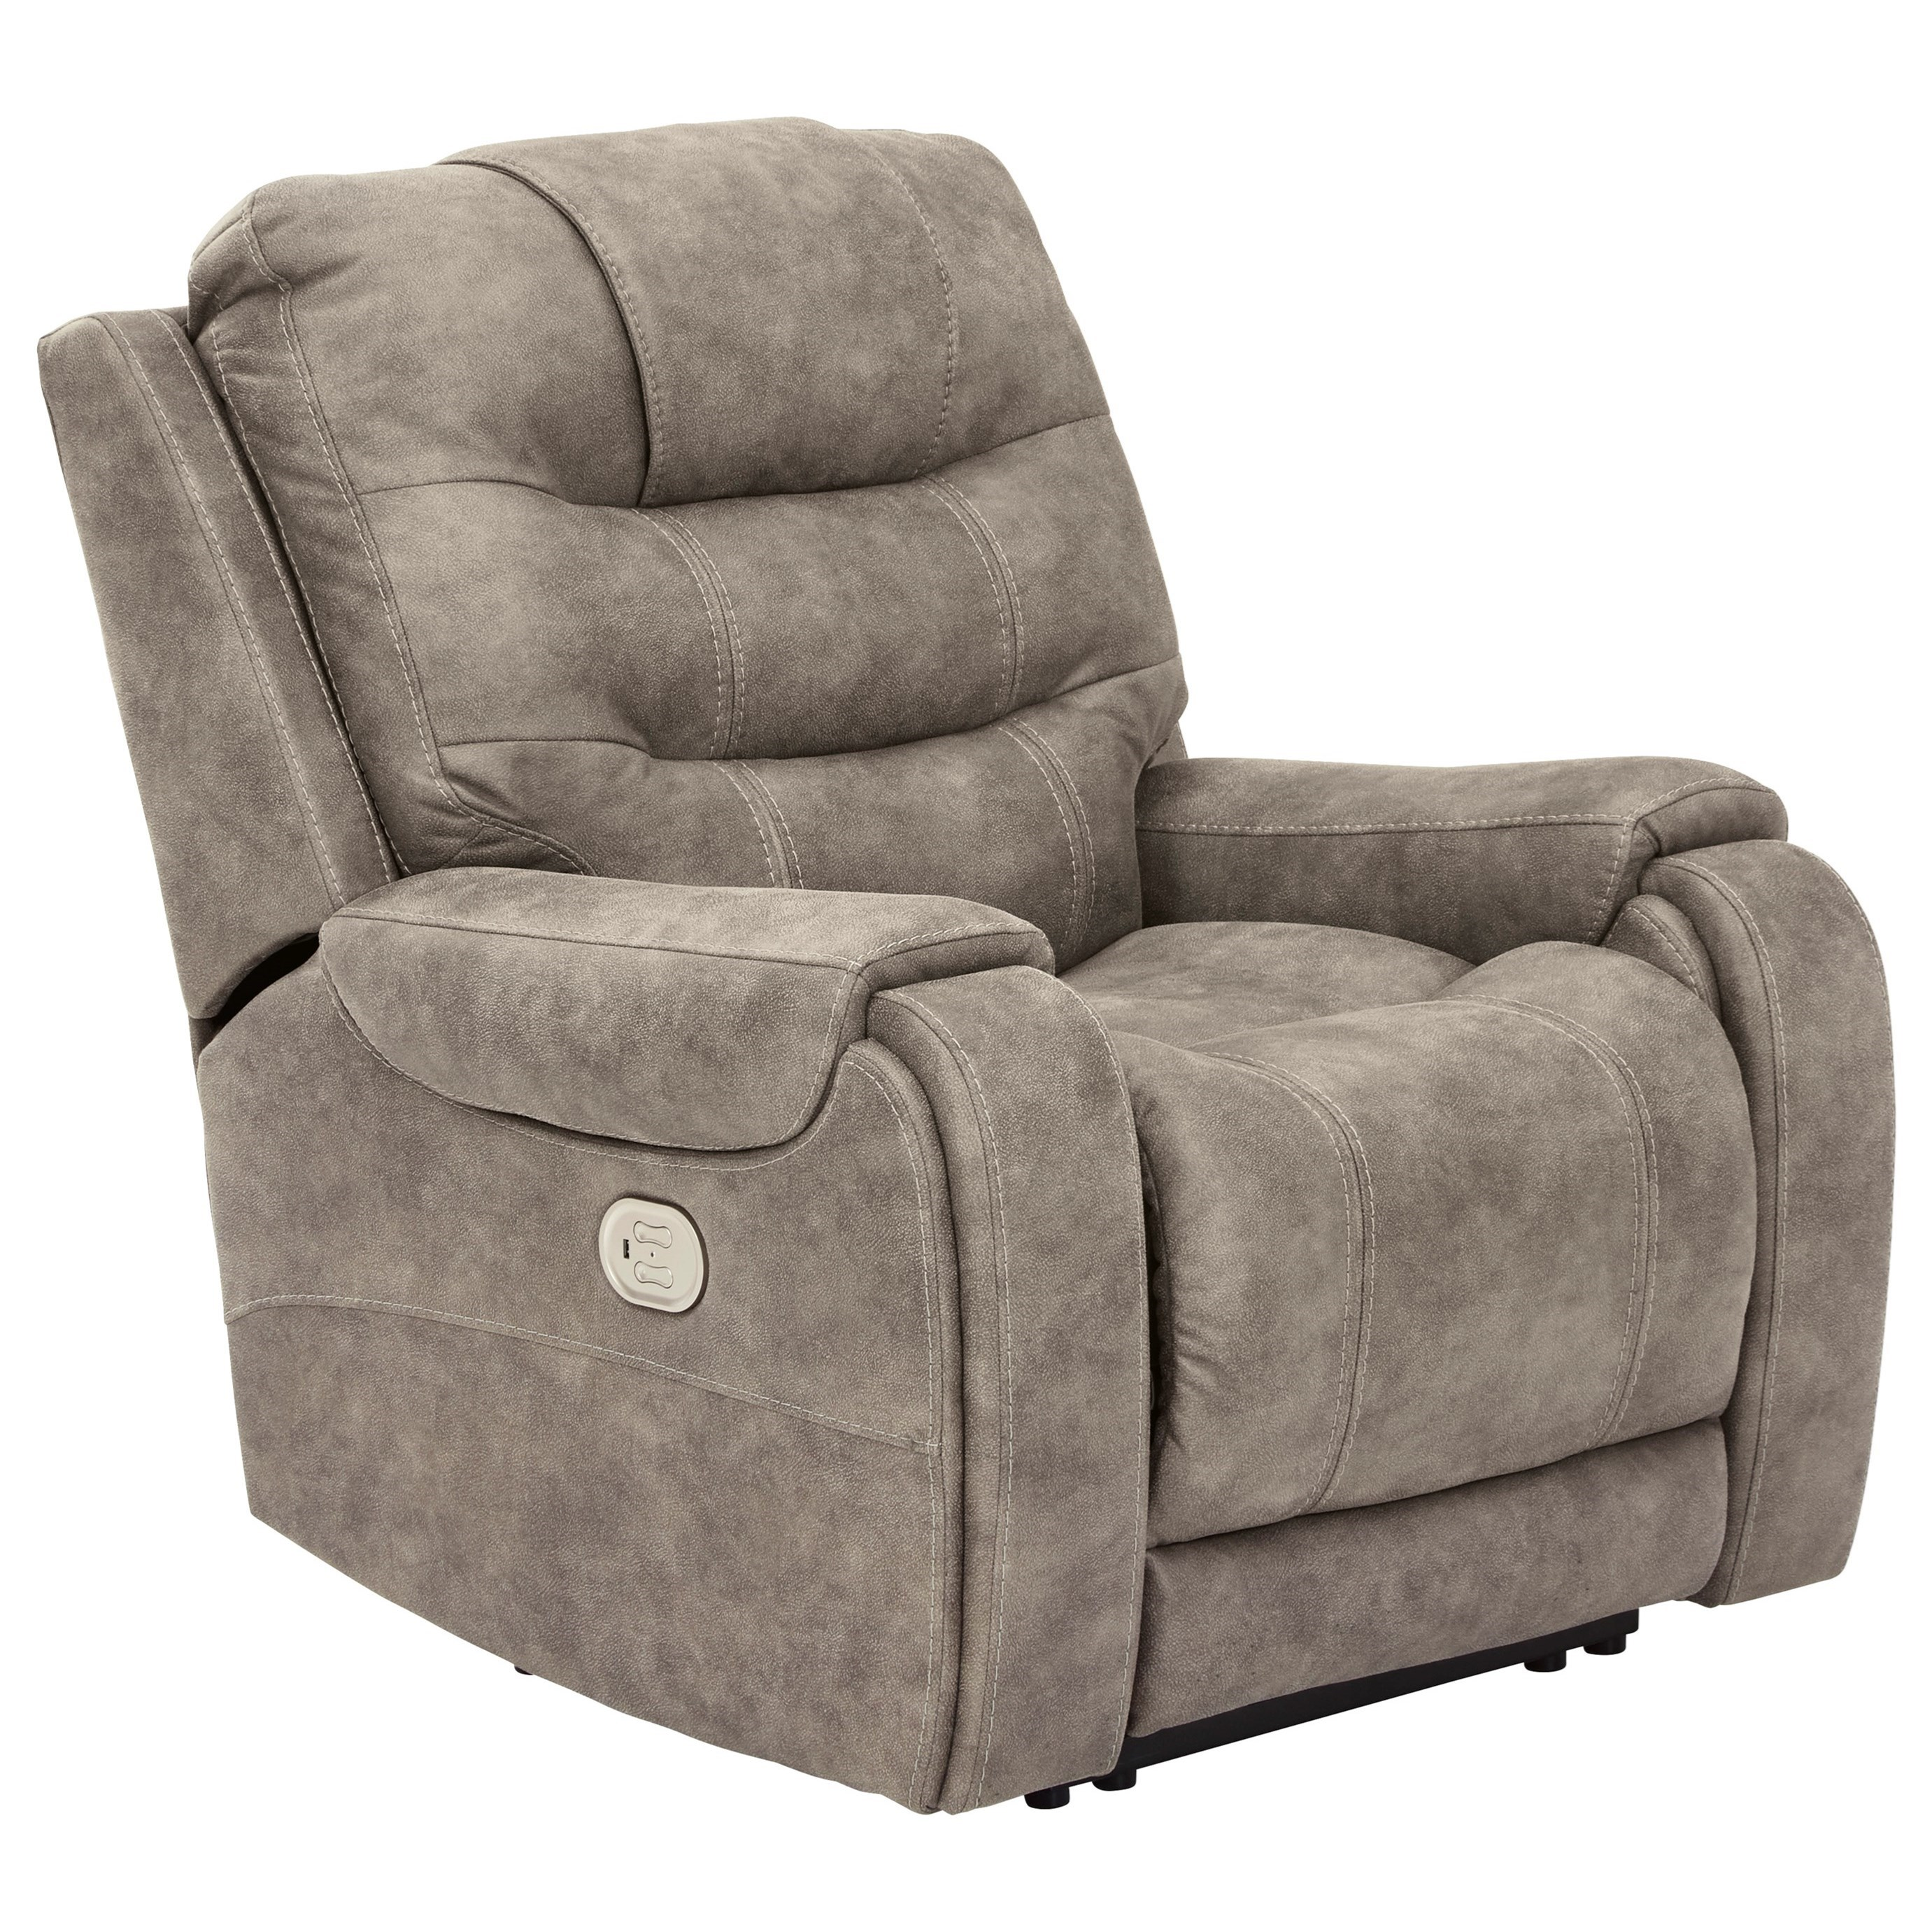 Yacolt Power Recliner with Adjustable Headrest by Signature Design by Ashley at Beck's Furniture